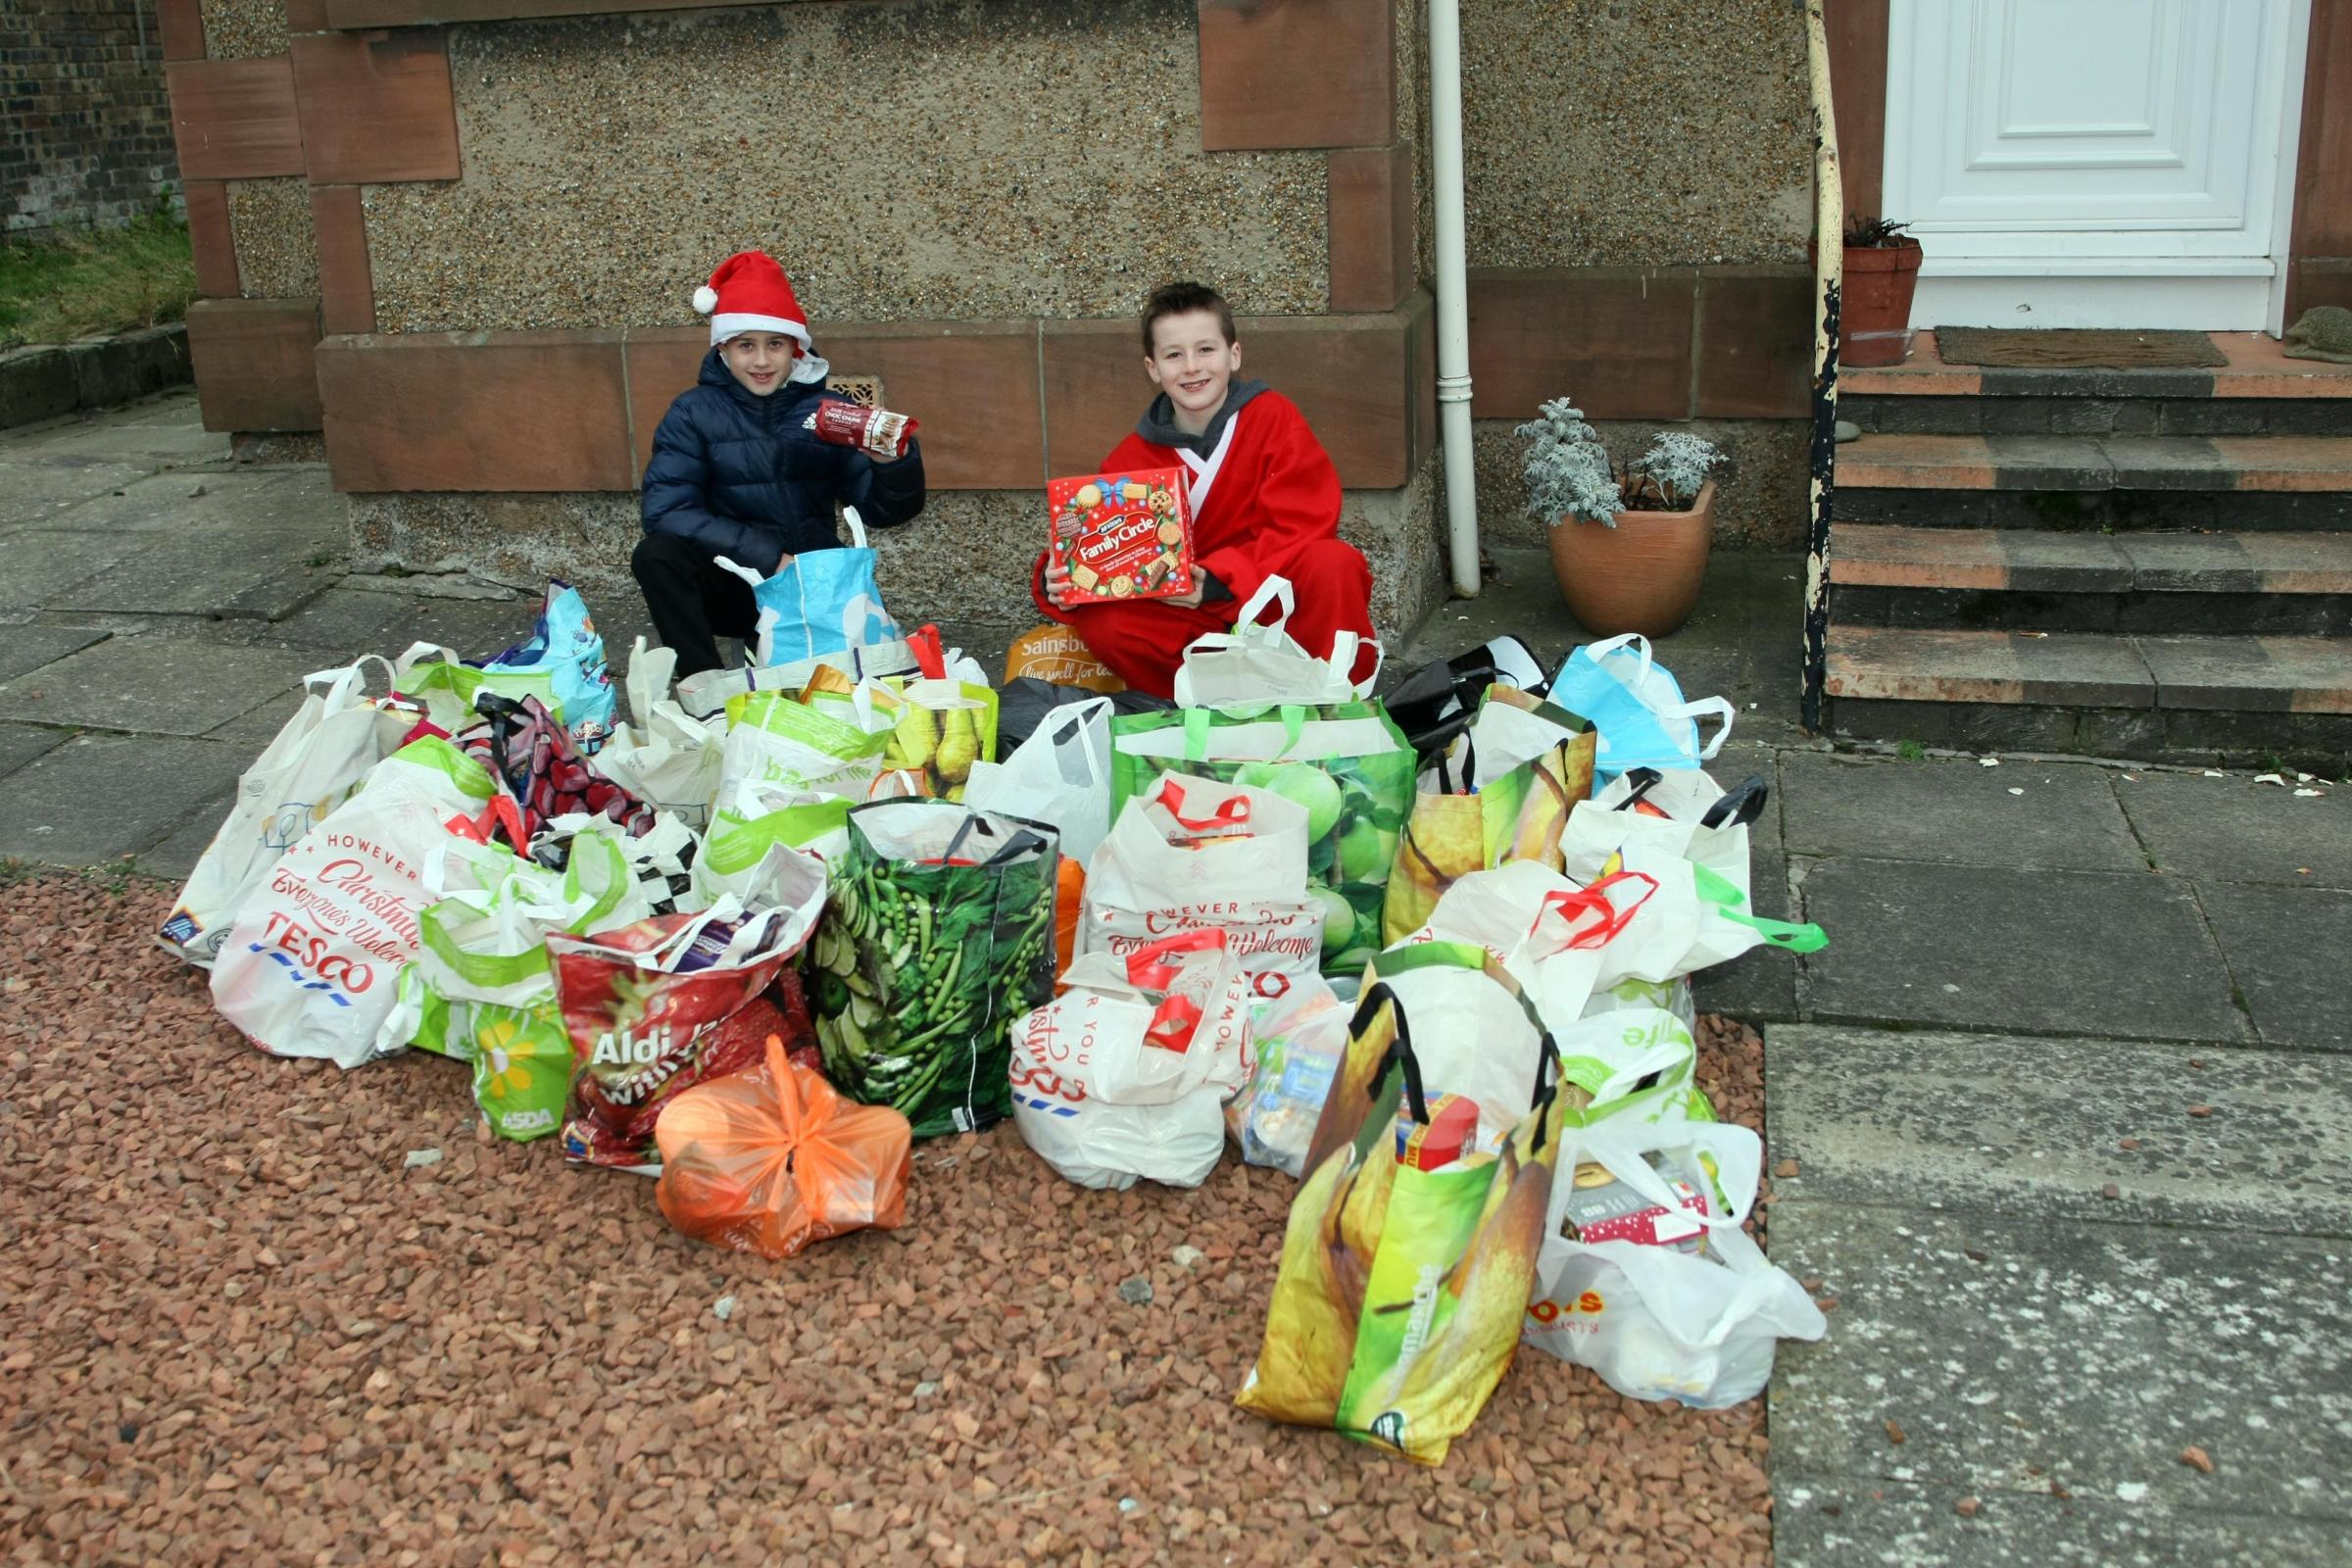 Archie Strang (right) and Lucas Leishman collected more than 100 kilogrammes of food for the East Lothian Foodbank